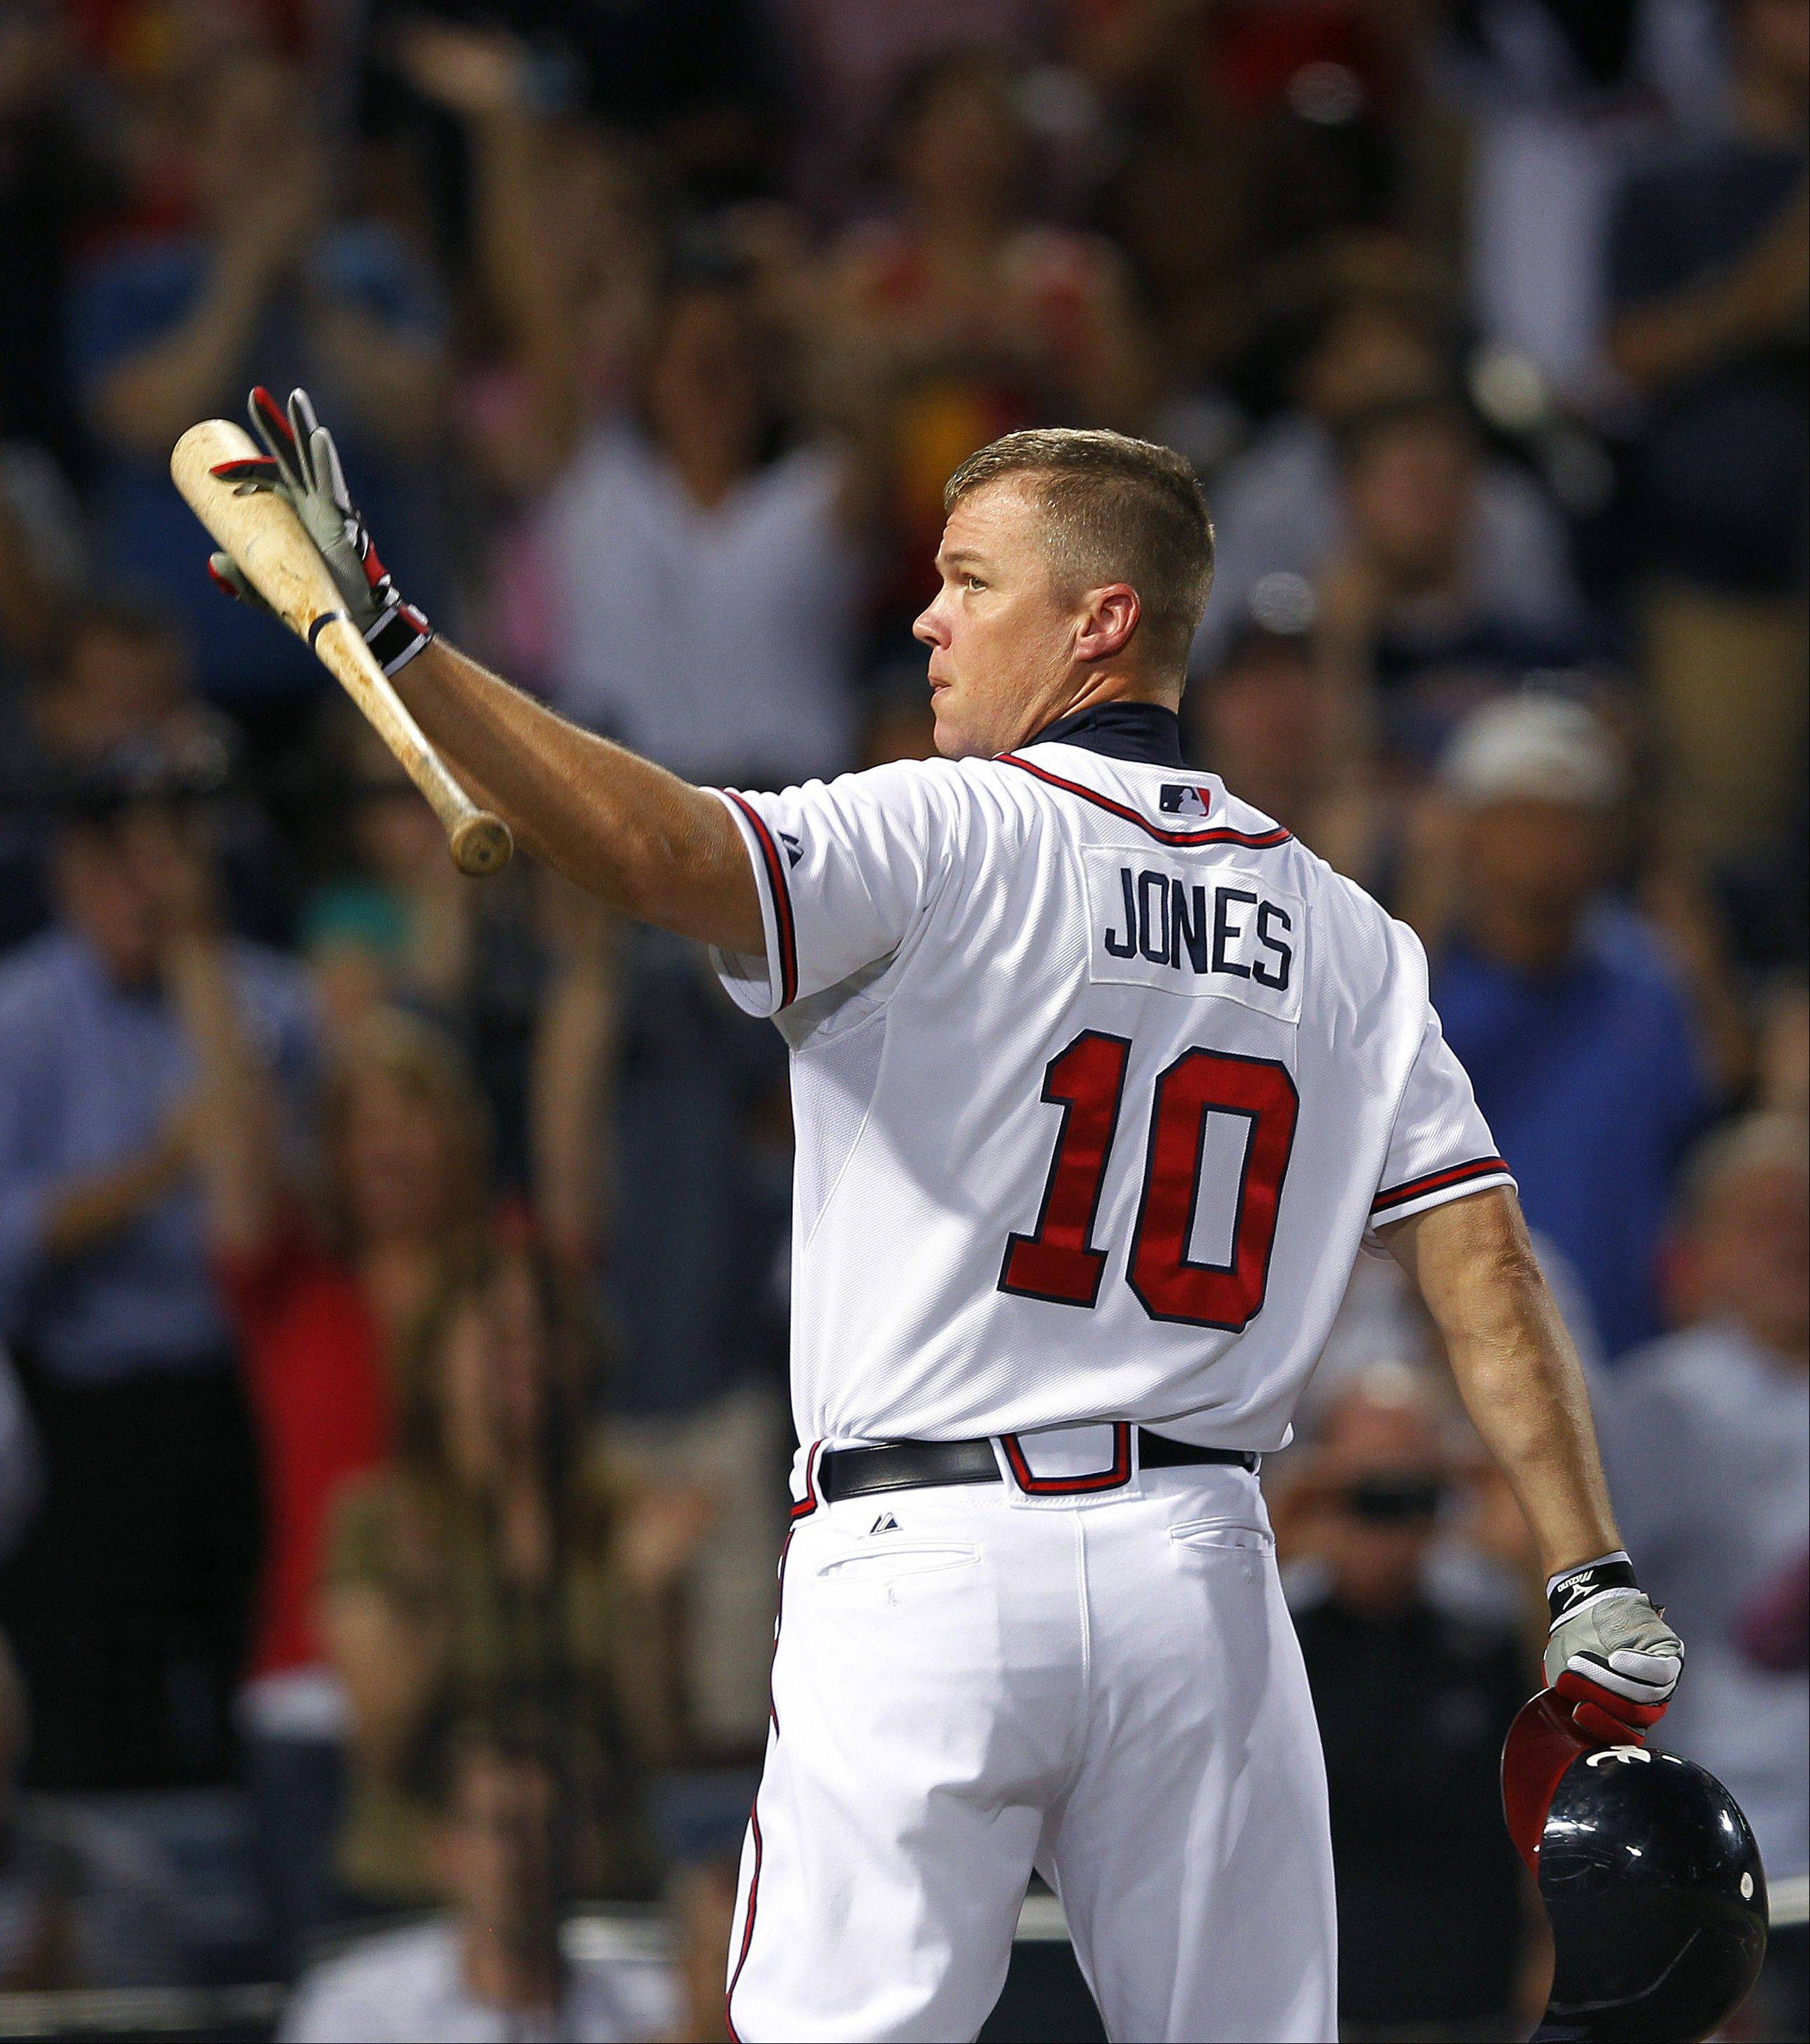 Chipper Jones savoring final homestand in Atlanta